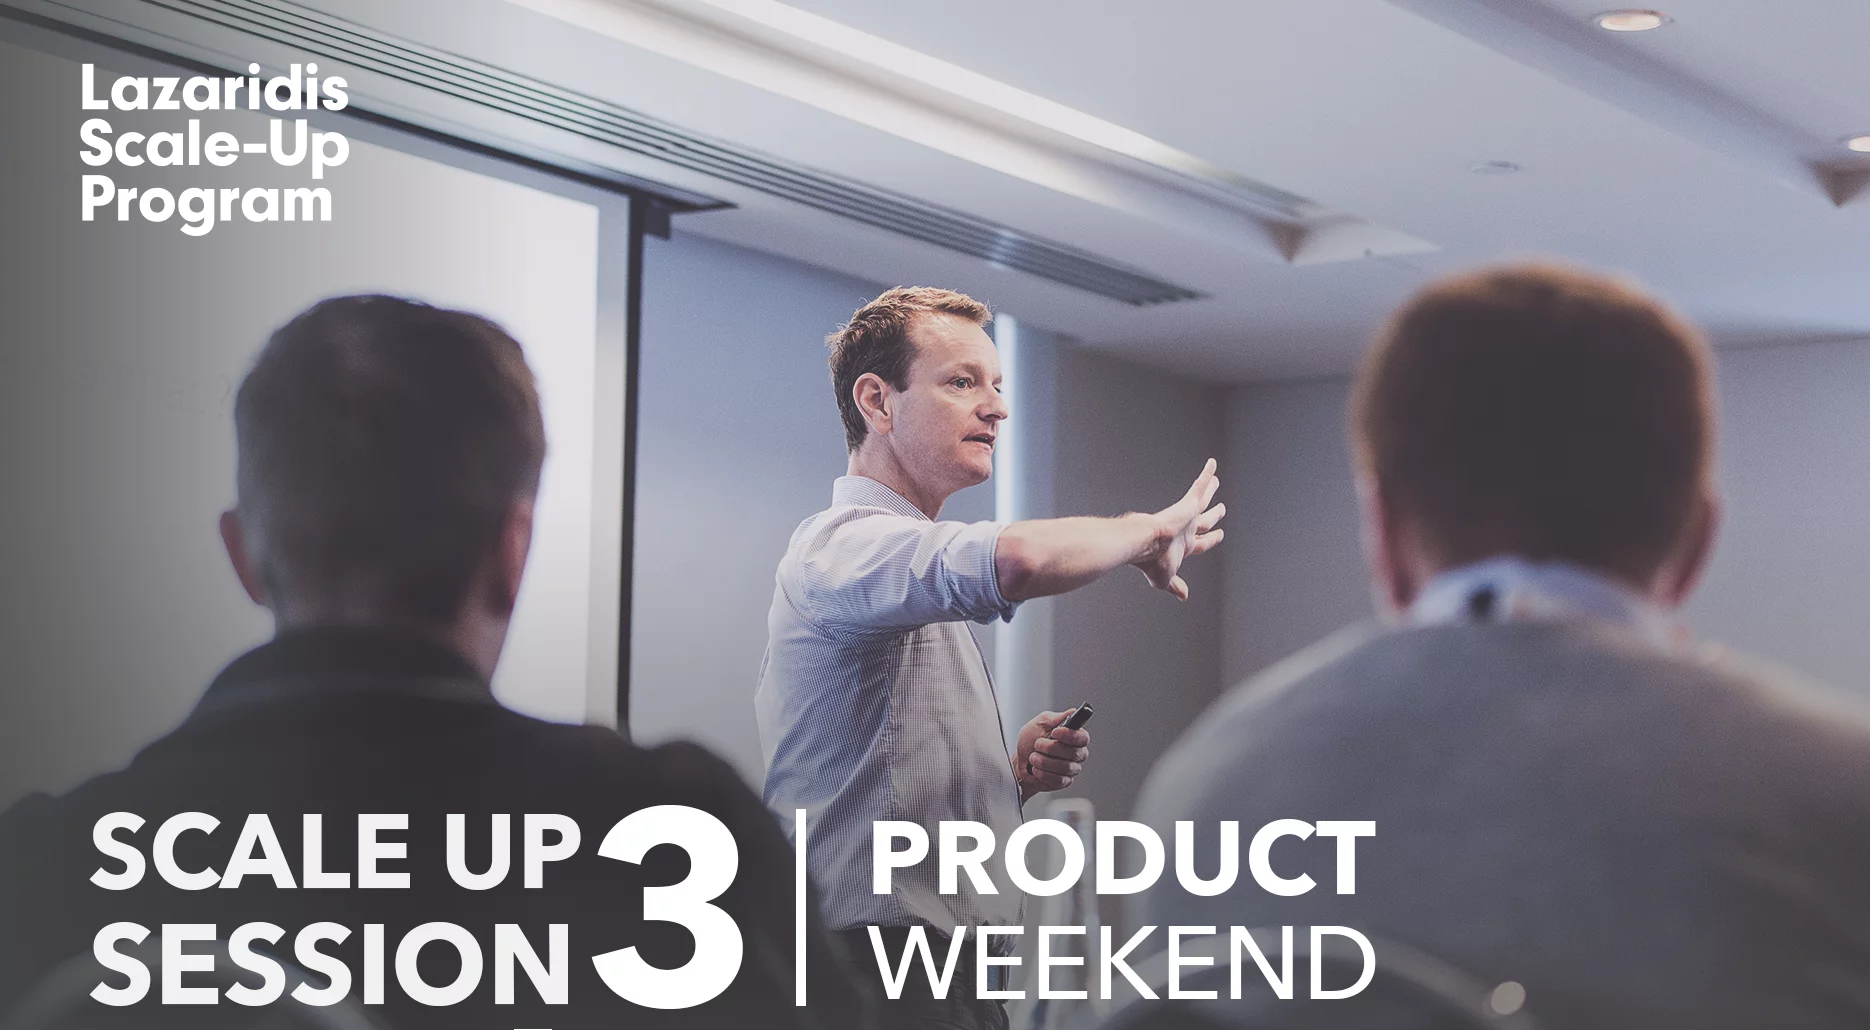 Highlights from the Lazaridis ScaleUp Program's Product Weekend